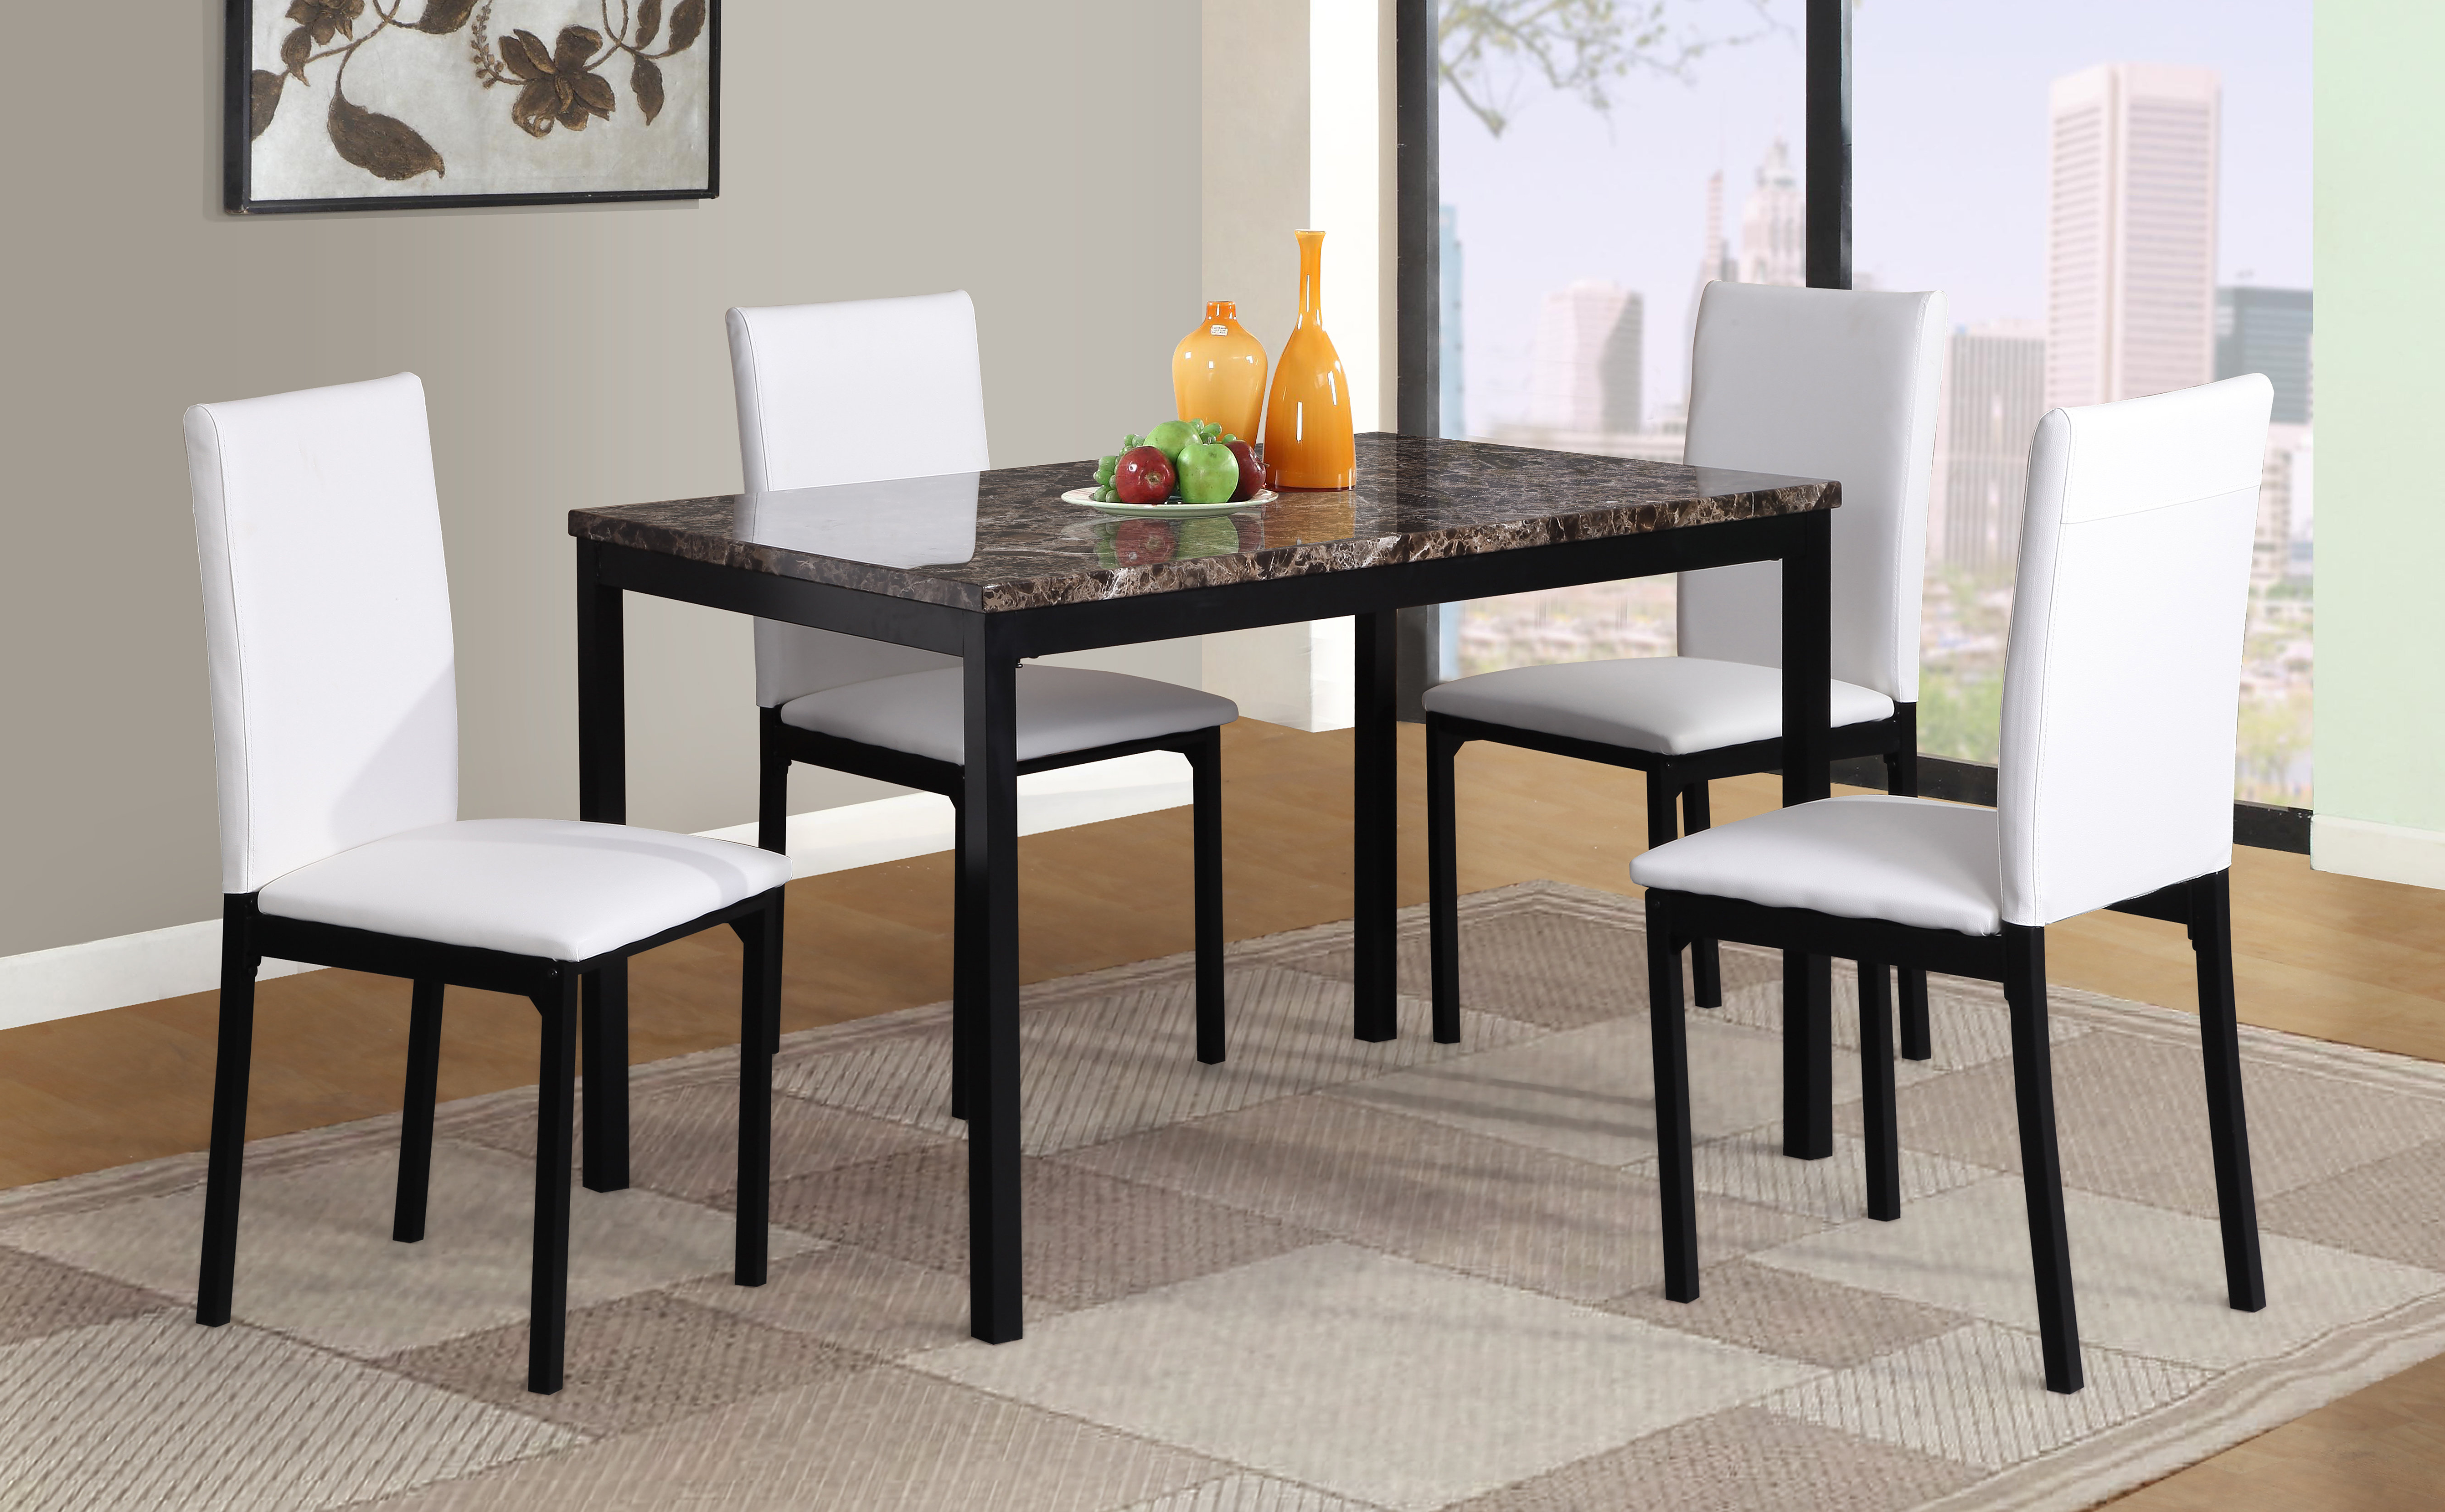 Wayfair Intended For Popular Travon 5 Piece Dining Sets (View 17 of 25)